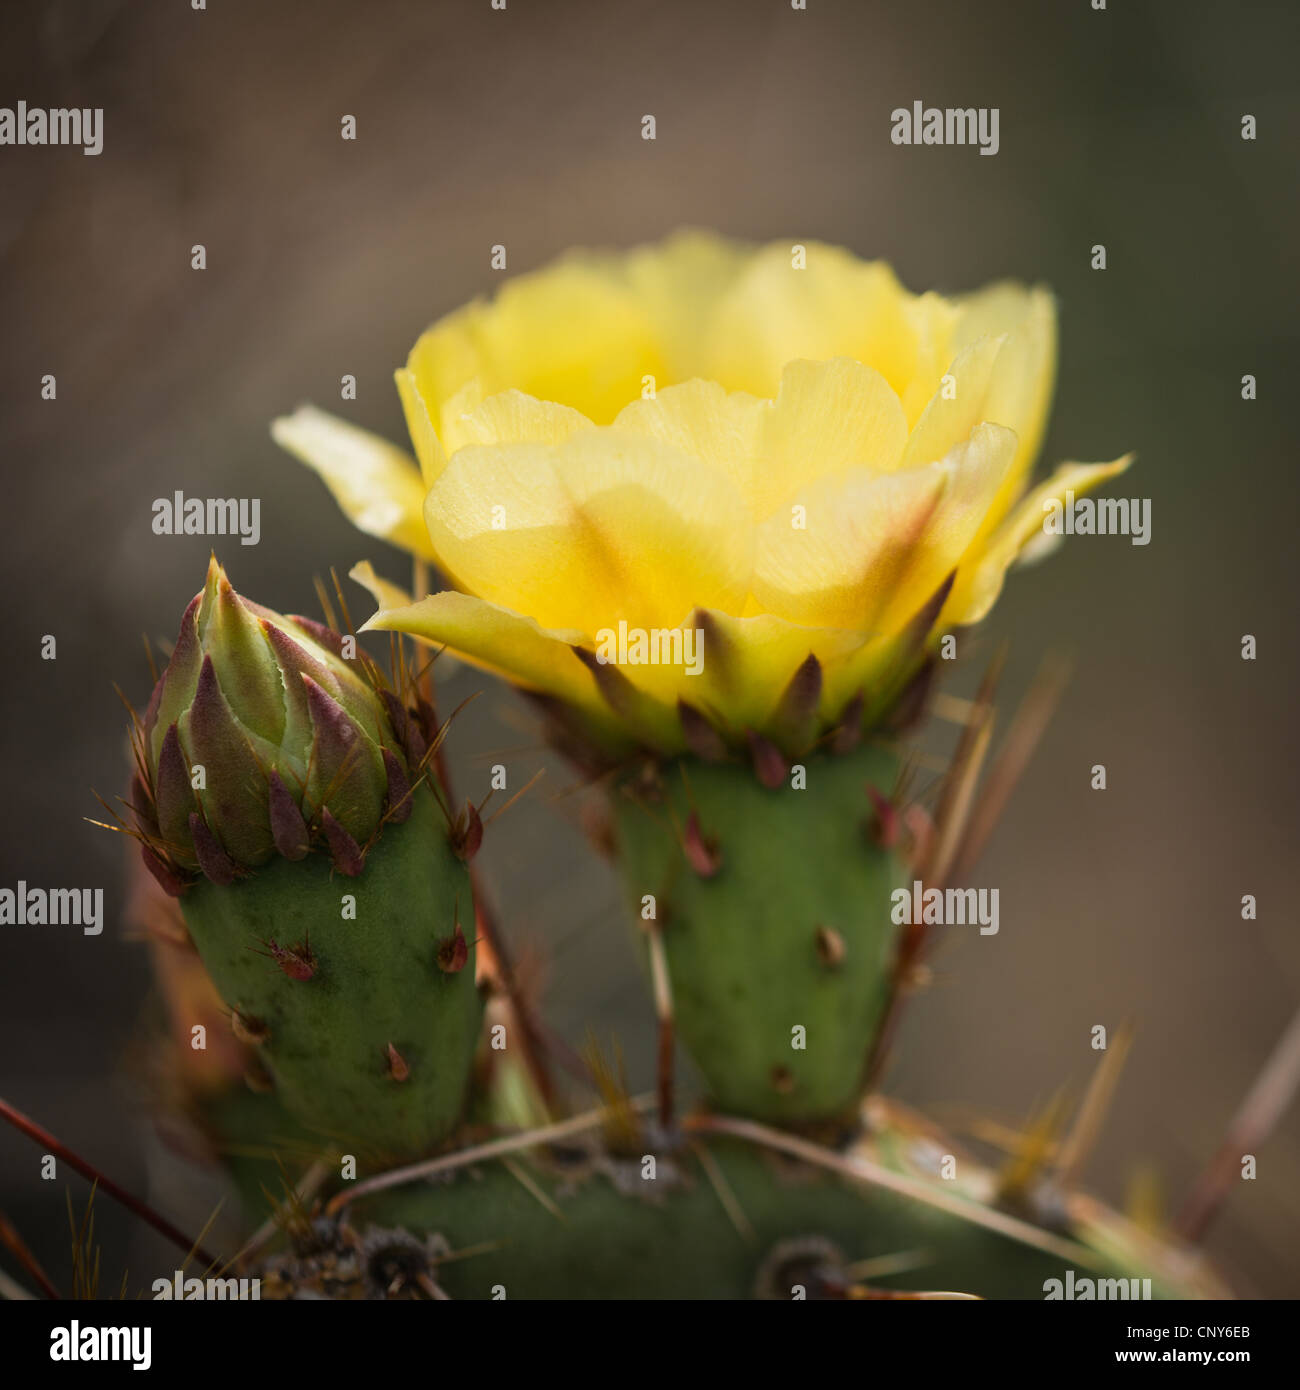 Macro photograph of a yellow flowering Prickly Pear Cactus Stock Photo